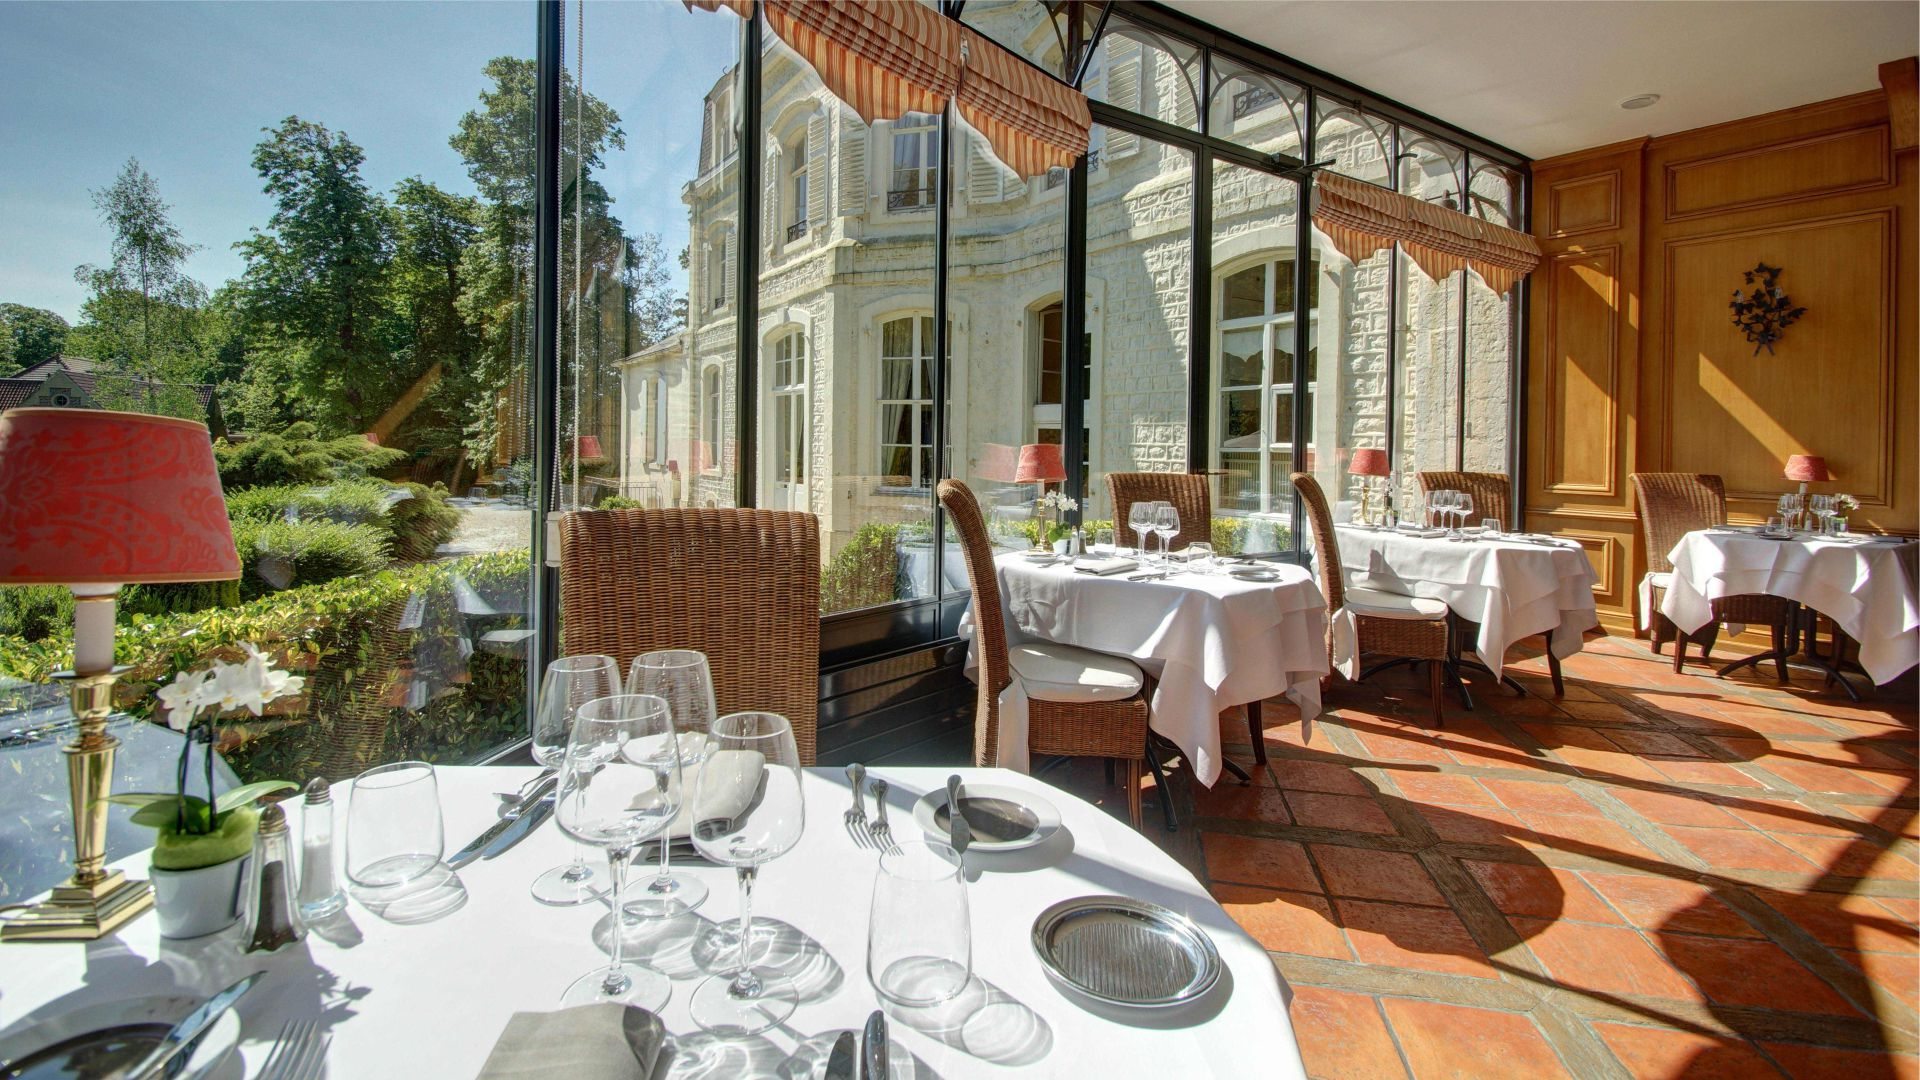 Super Restaurant Boulogne, restaurant traditionnel Boulogne - Najeti  UV32